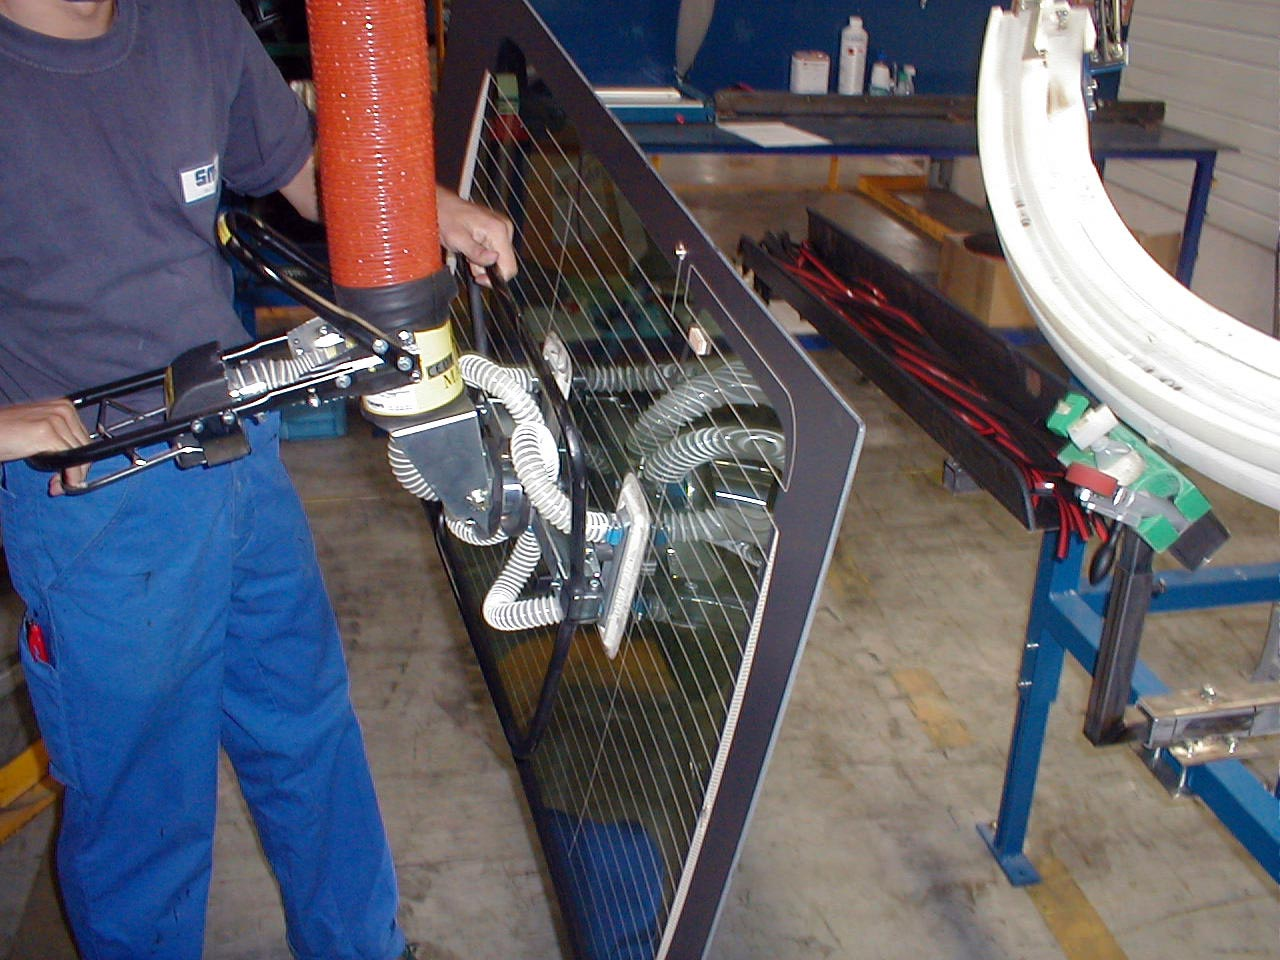 lifting windshield in automotive assembly line